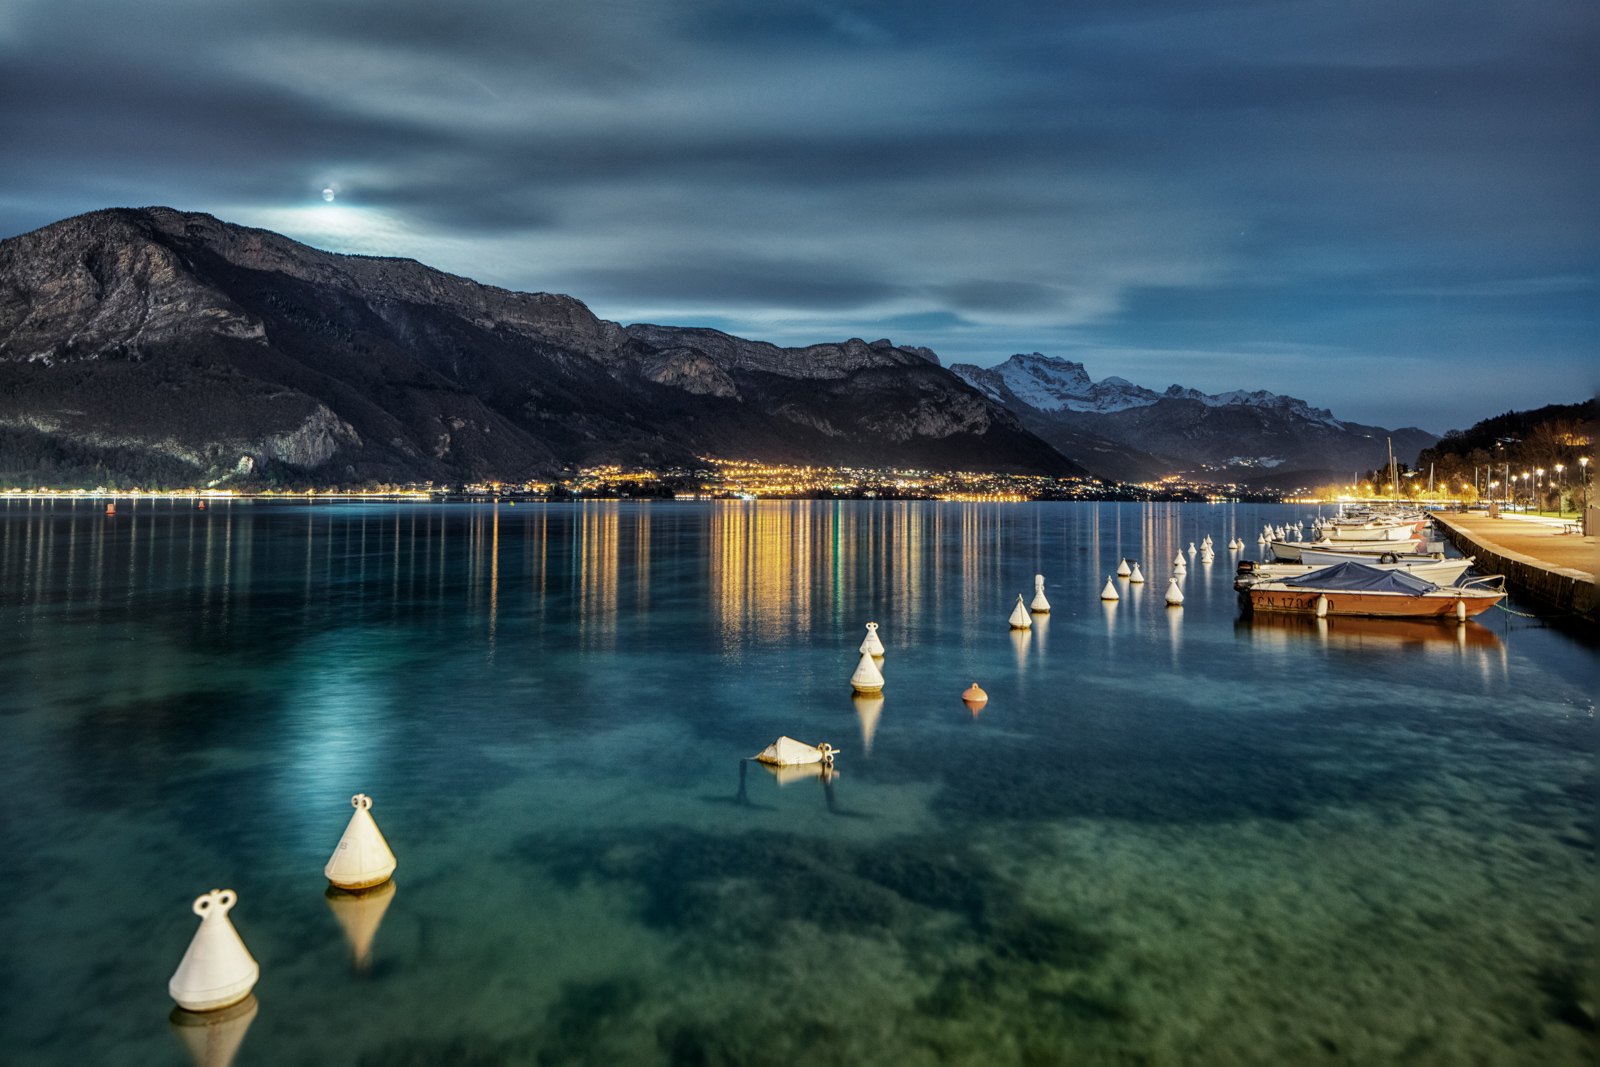 Lac d'Annecy at night